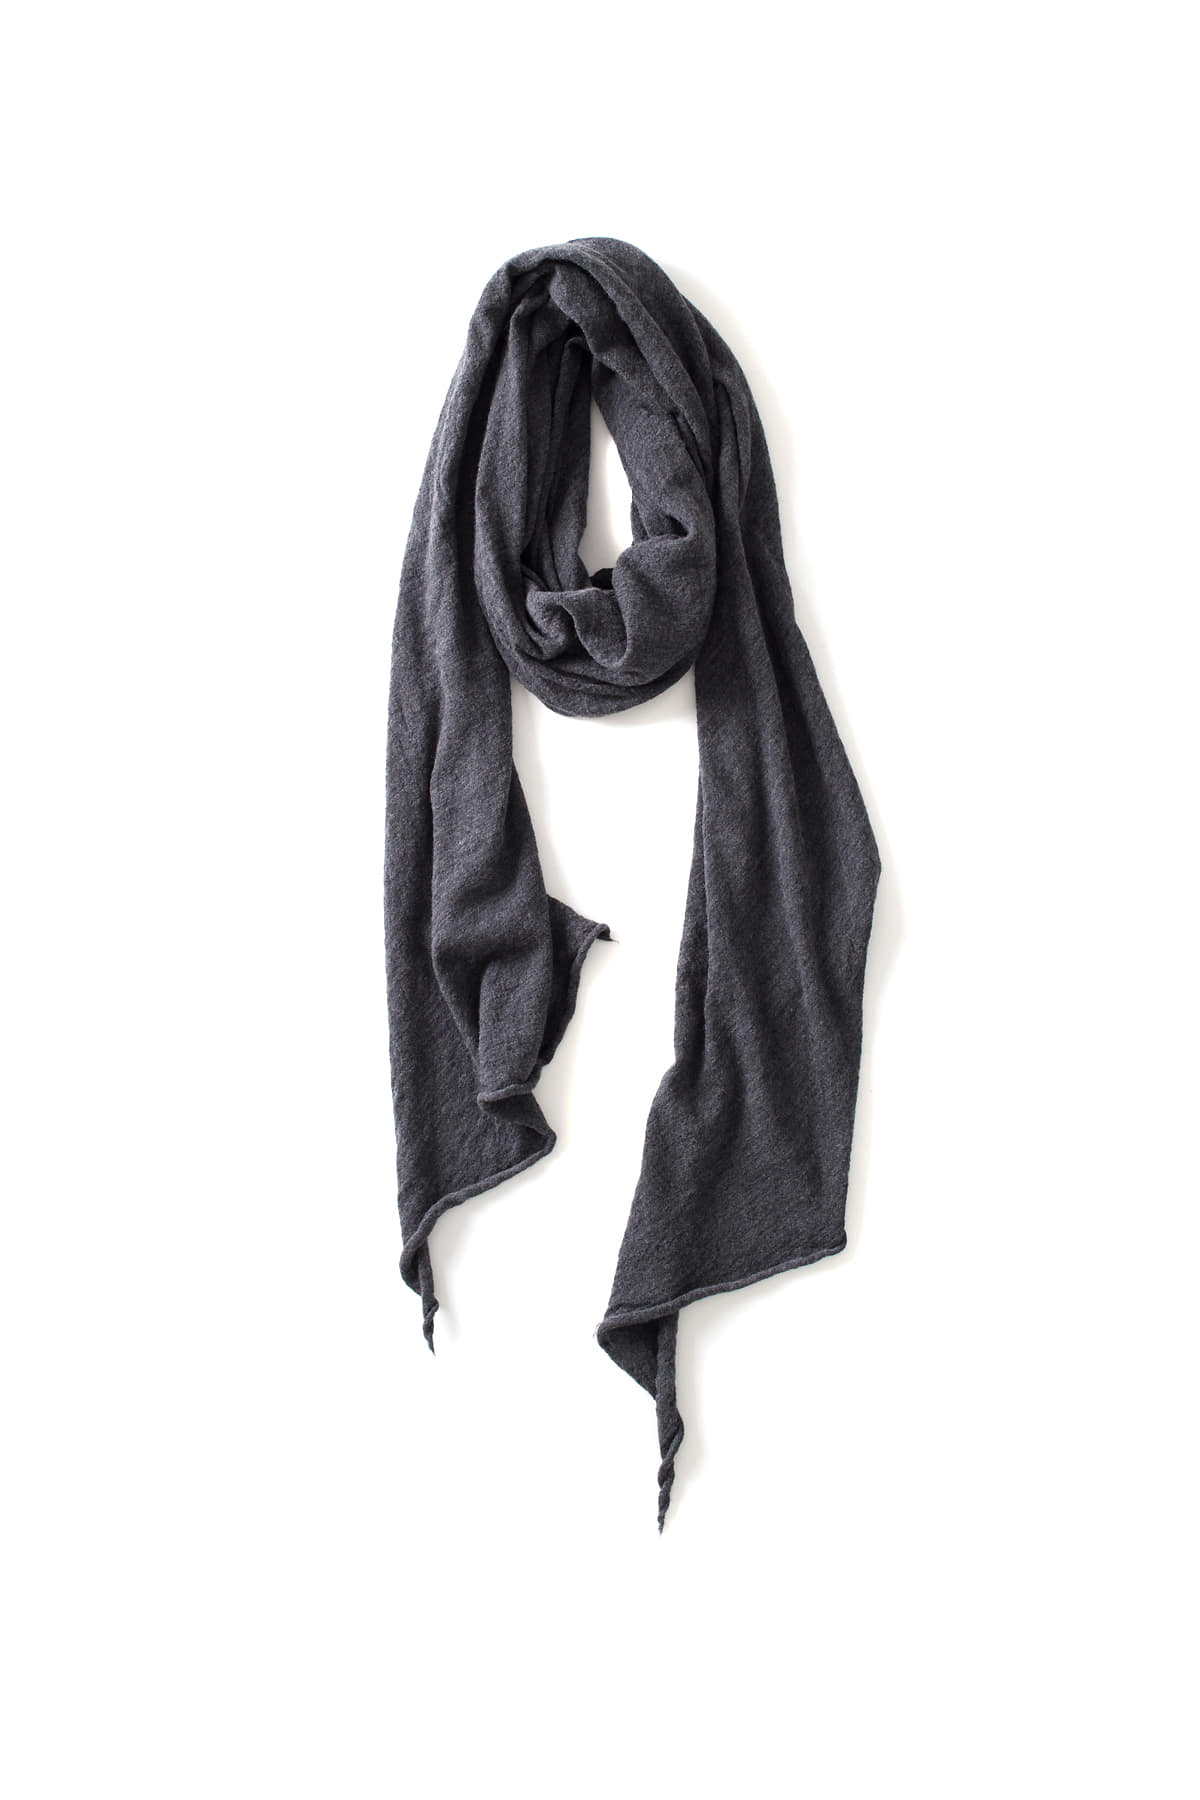 RYU : Washable Wool Gauze Stole (Charcoal)